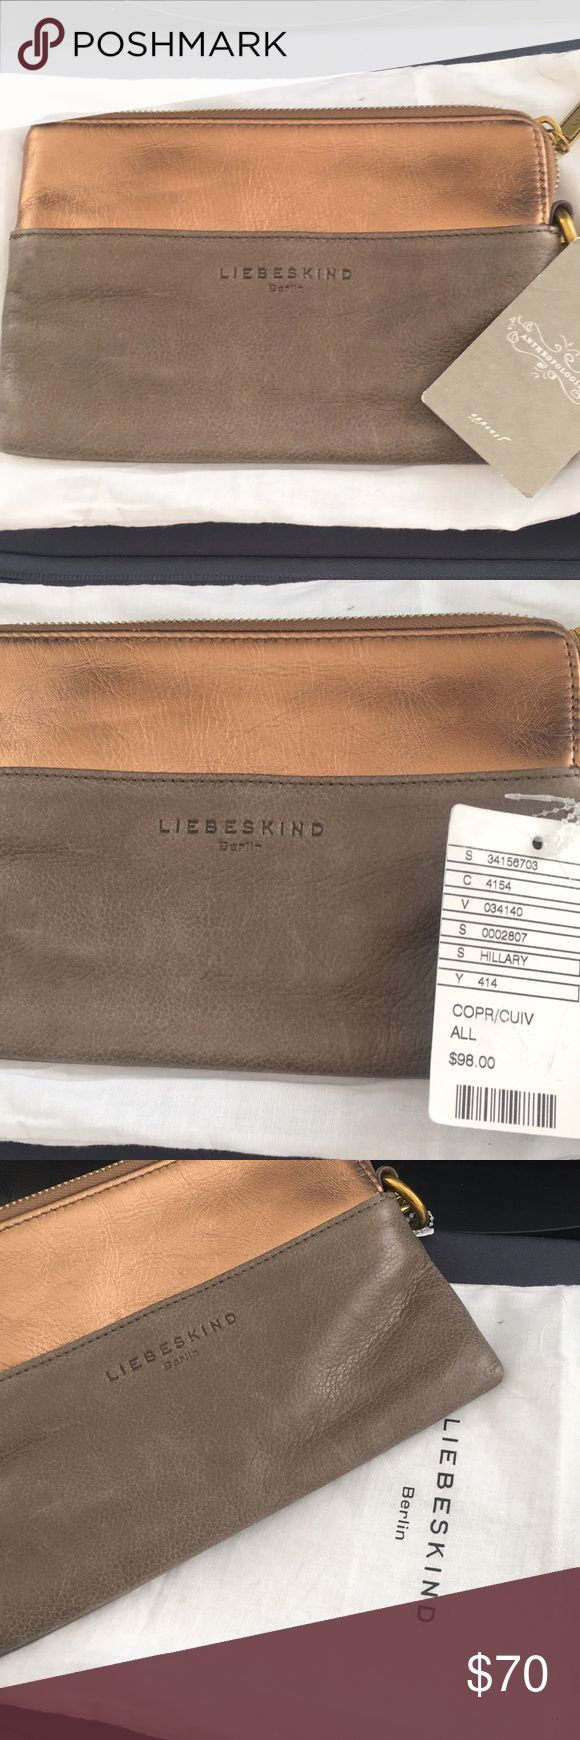 NWT leather Liebeskind clutch from Anthropologie Brand new with tags. Real leather clutch by Liebeskind from Anthropologie. Roughly 8.5 x6. Comes with white protective sleeve. Liebeskind Bags Clutches & Wristlets